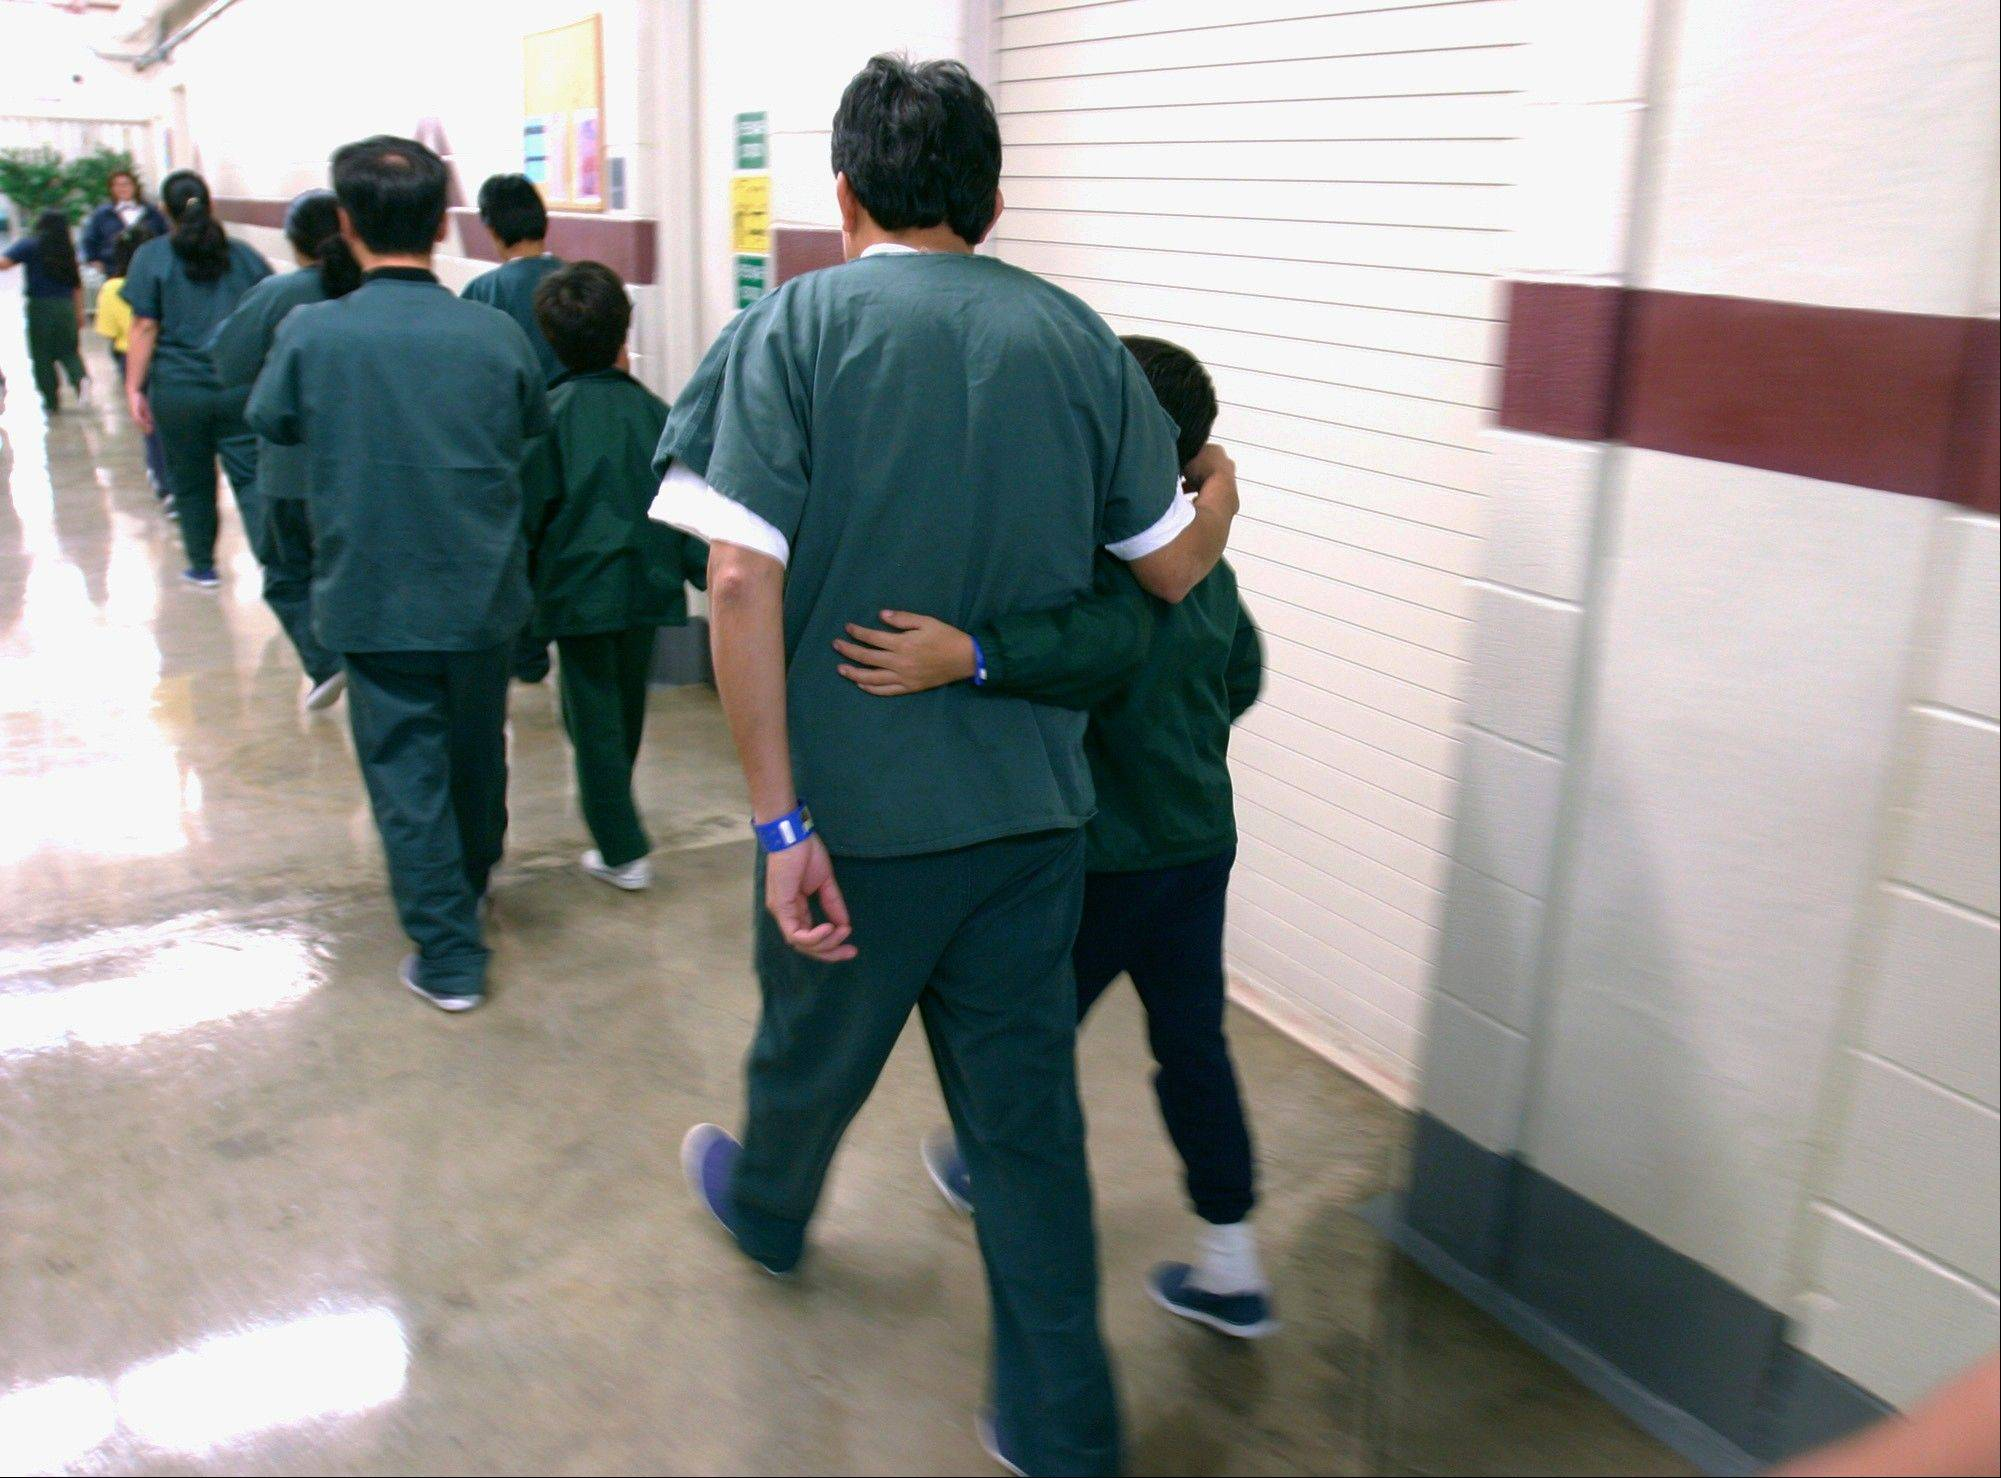 Family detainees walk down the hall at the T. Don Hutto Residential Center in Taylor, Texas.